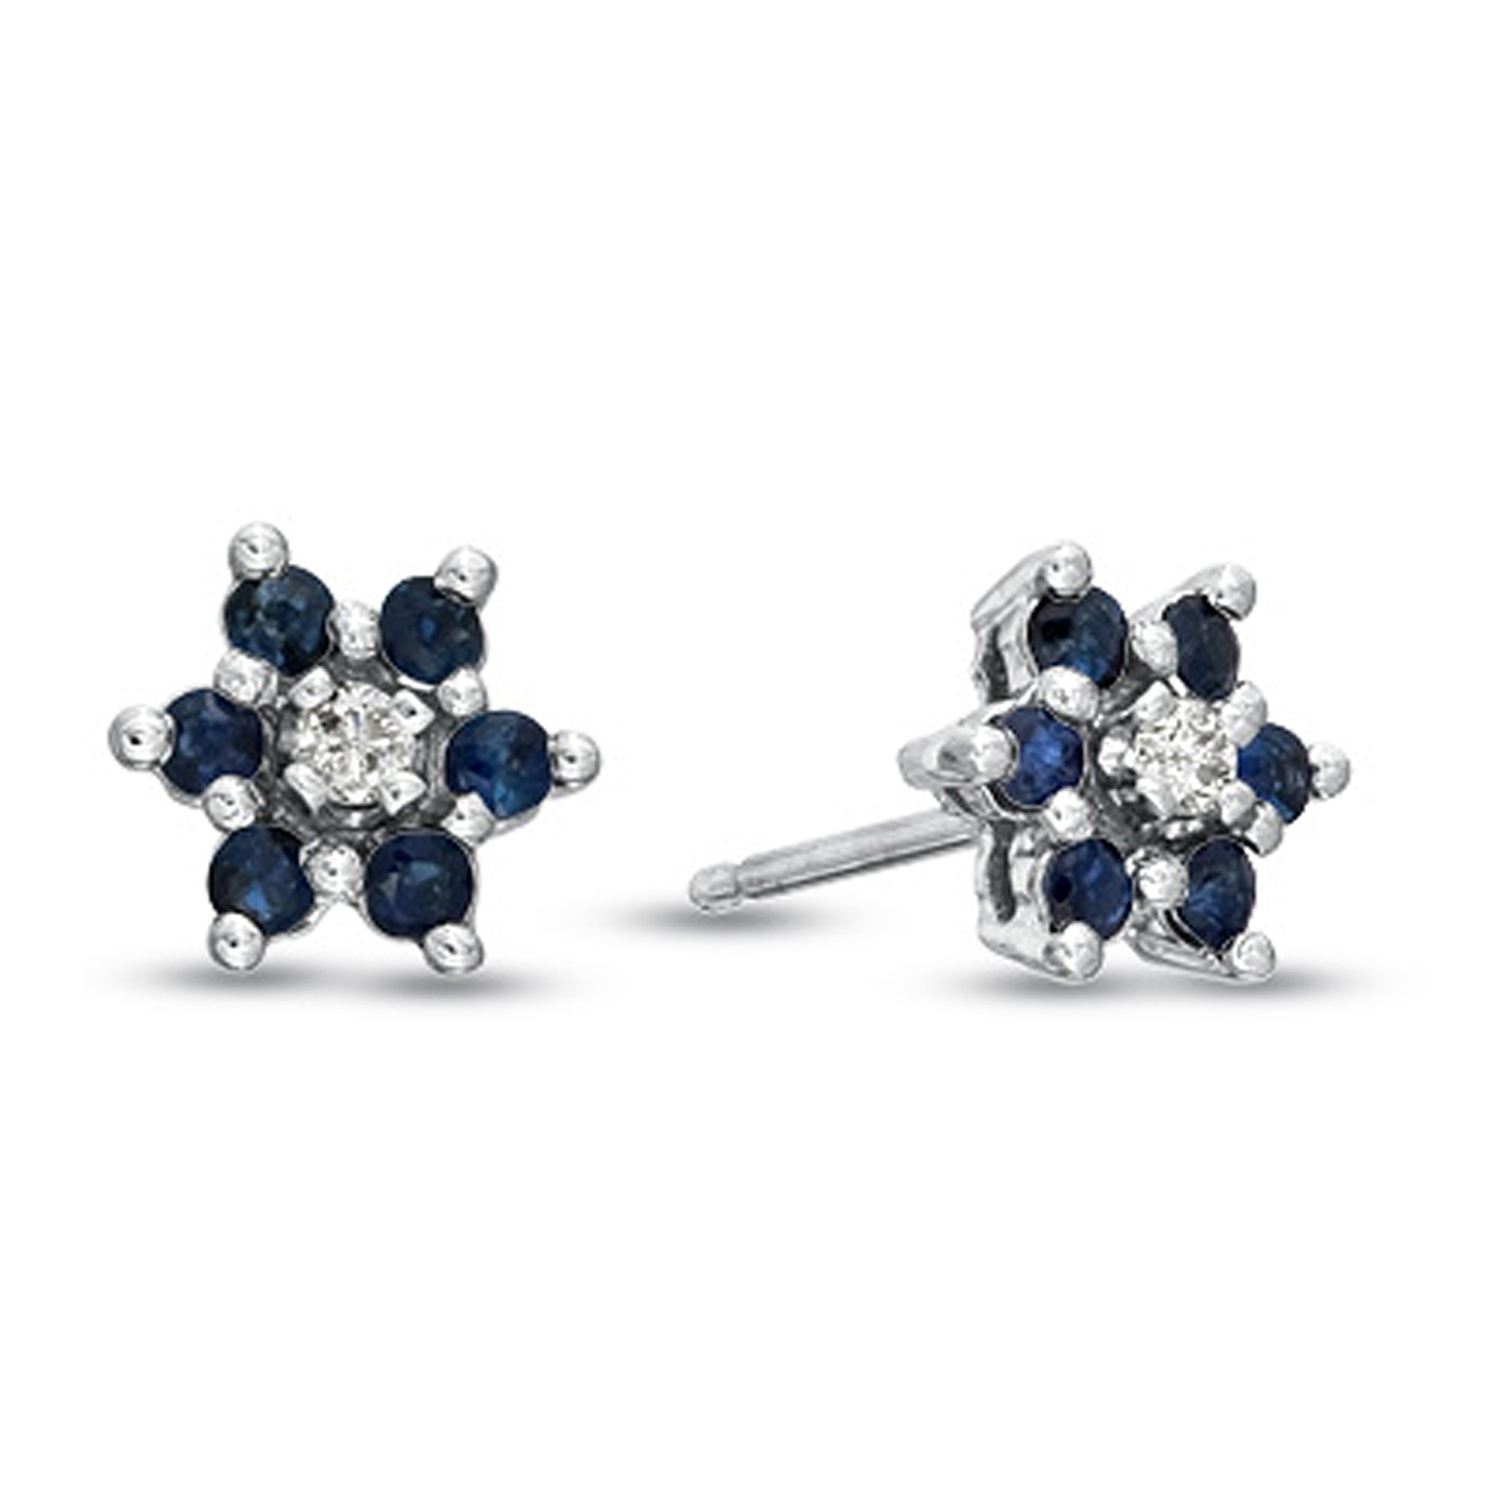 0.48cttw Sapphire and Diamond Flower Cluster Earrings set in 14k Gold